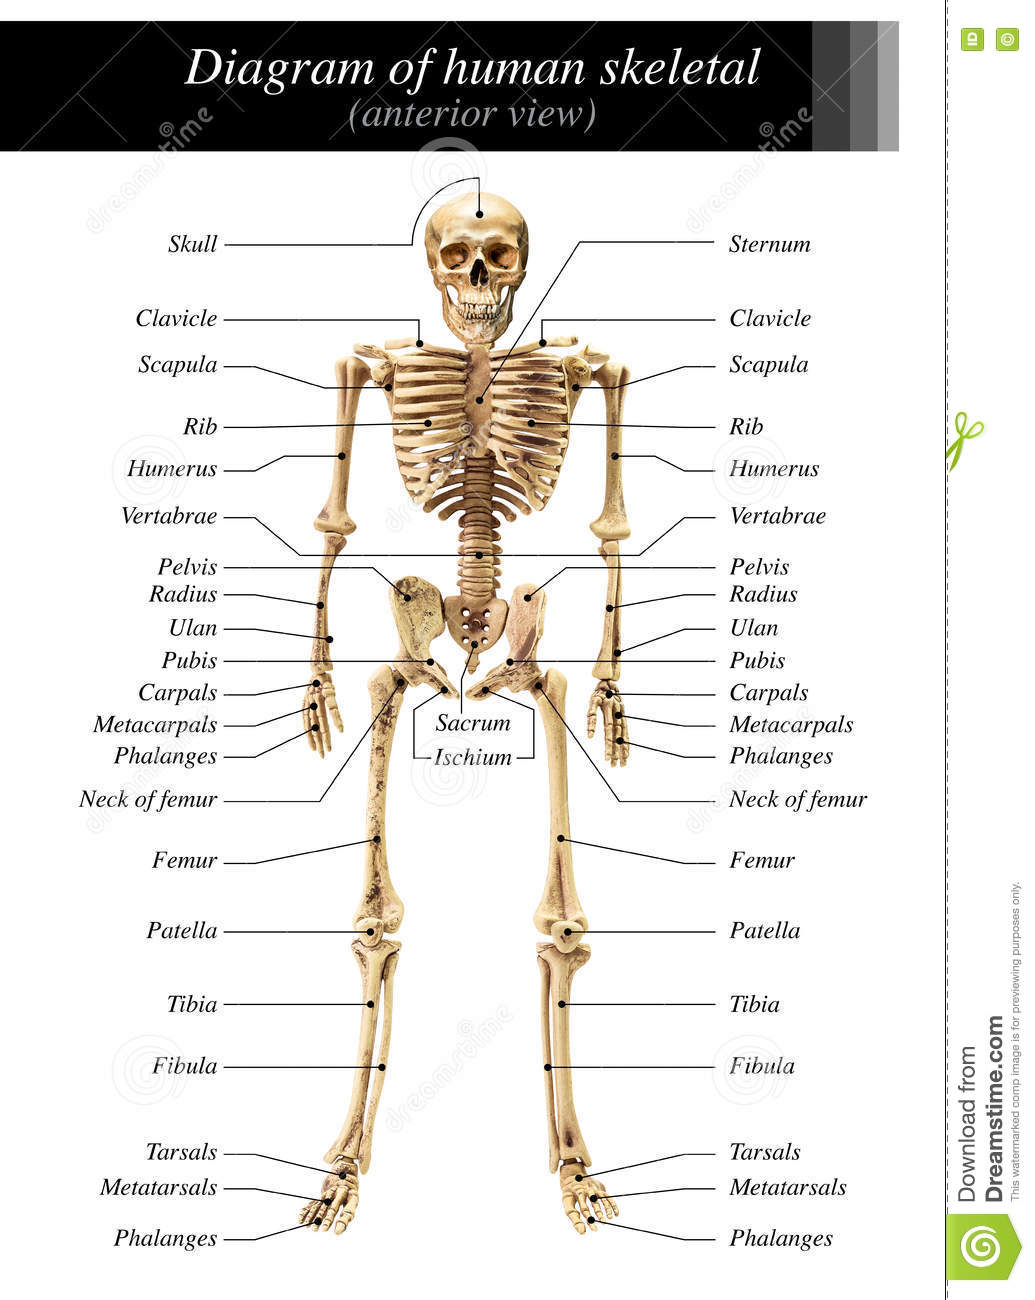 Human Skeleton Diagram Stock Image Image Of Humerus